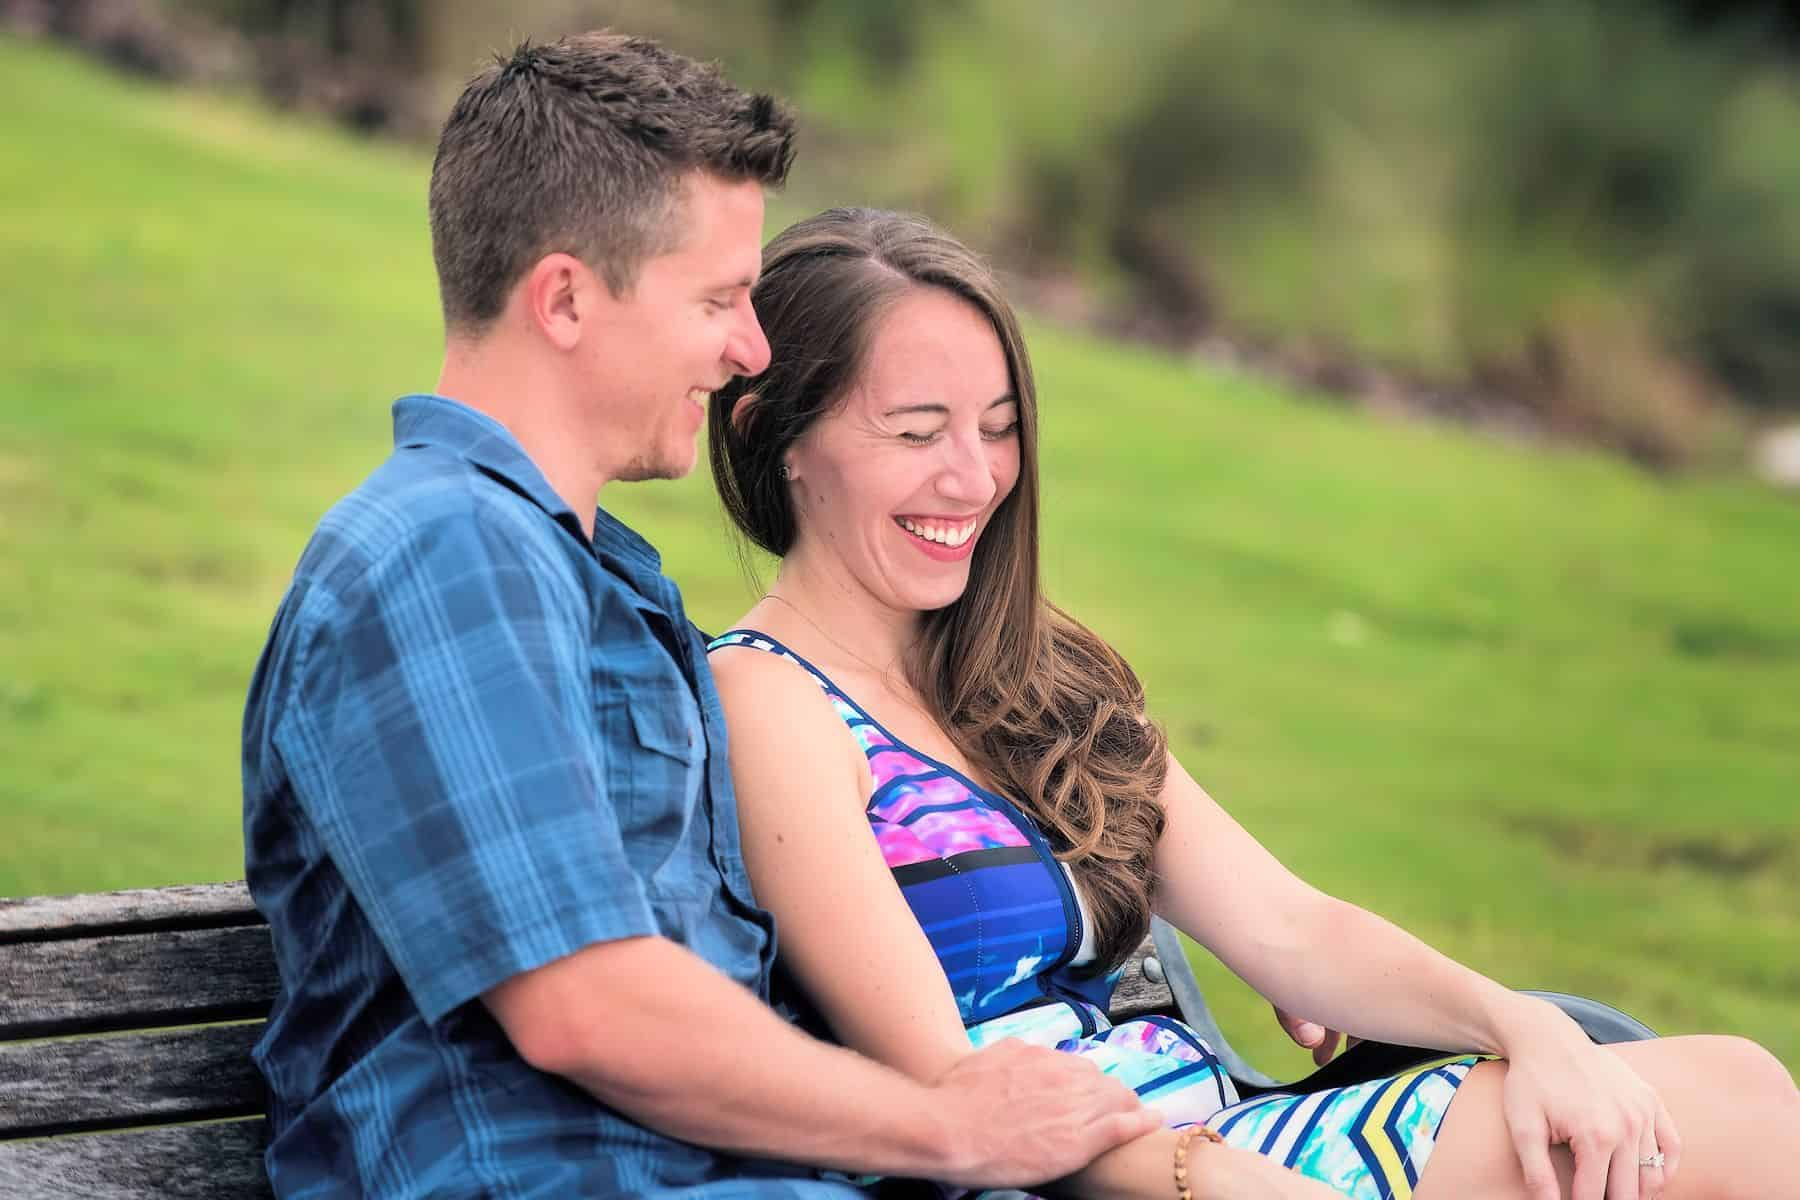 Couple laughs on Bench lakeside